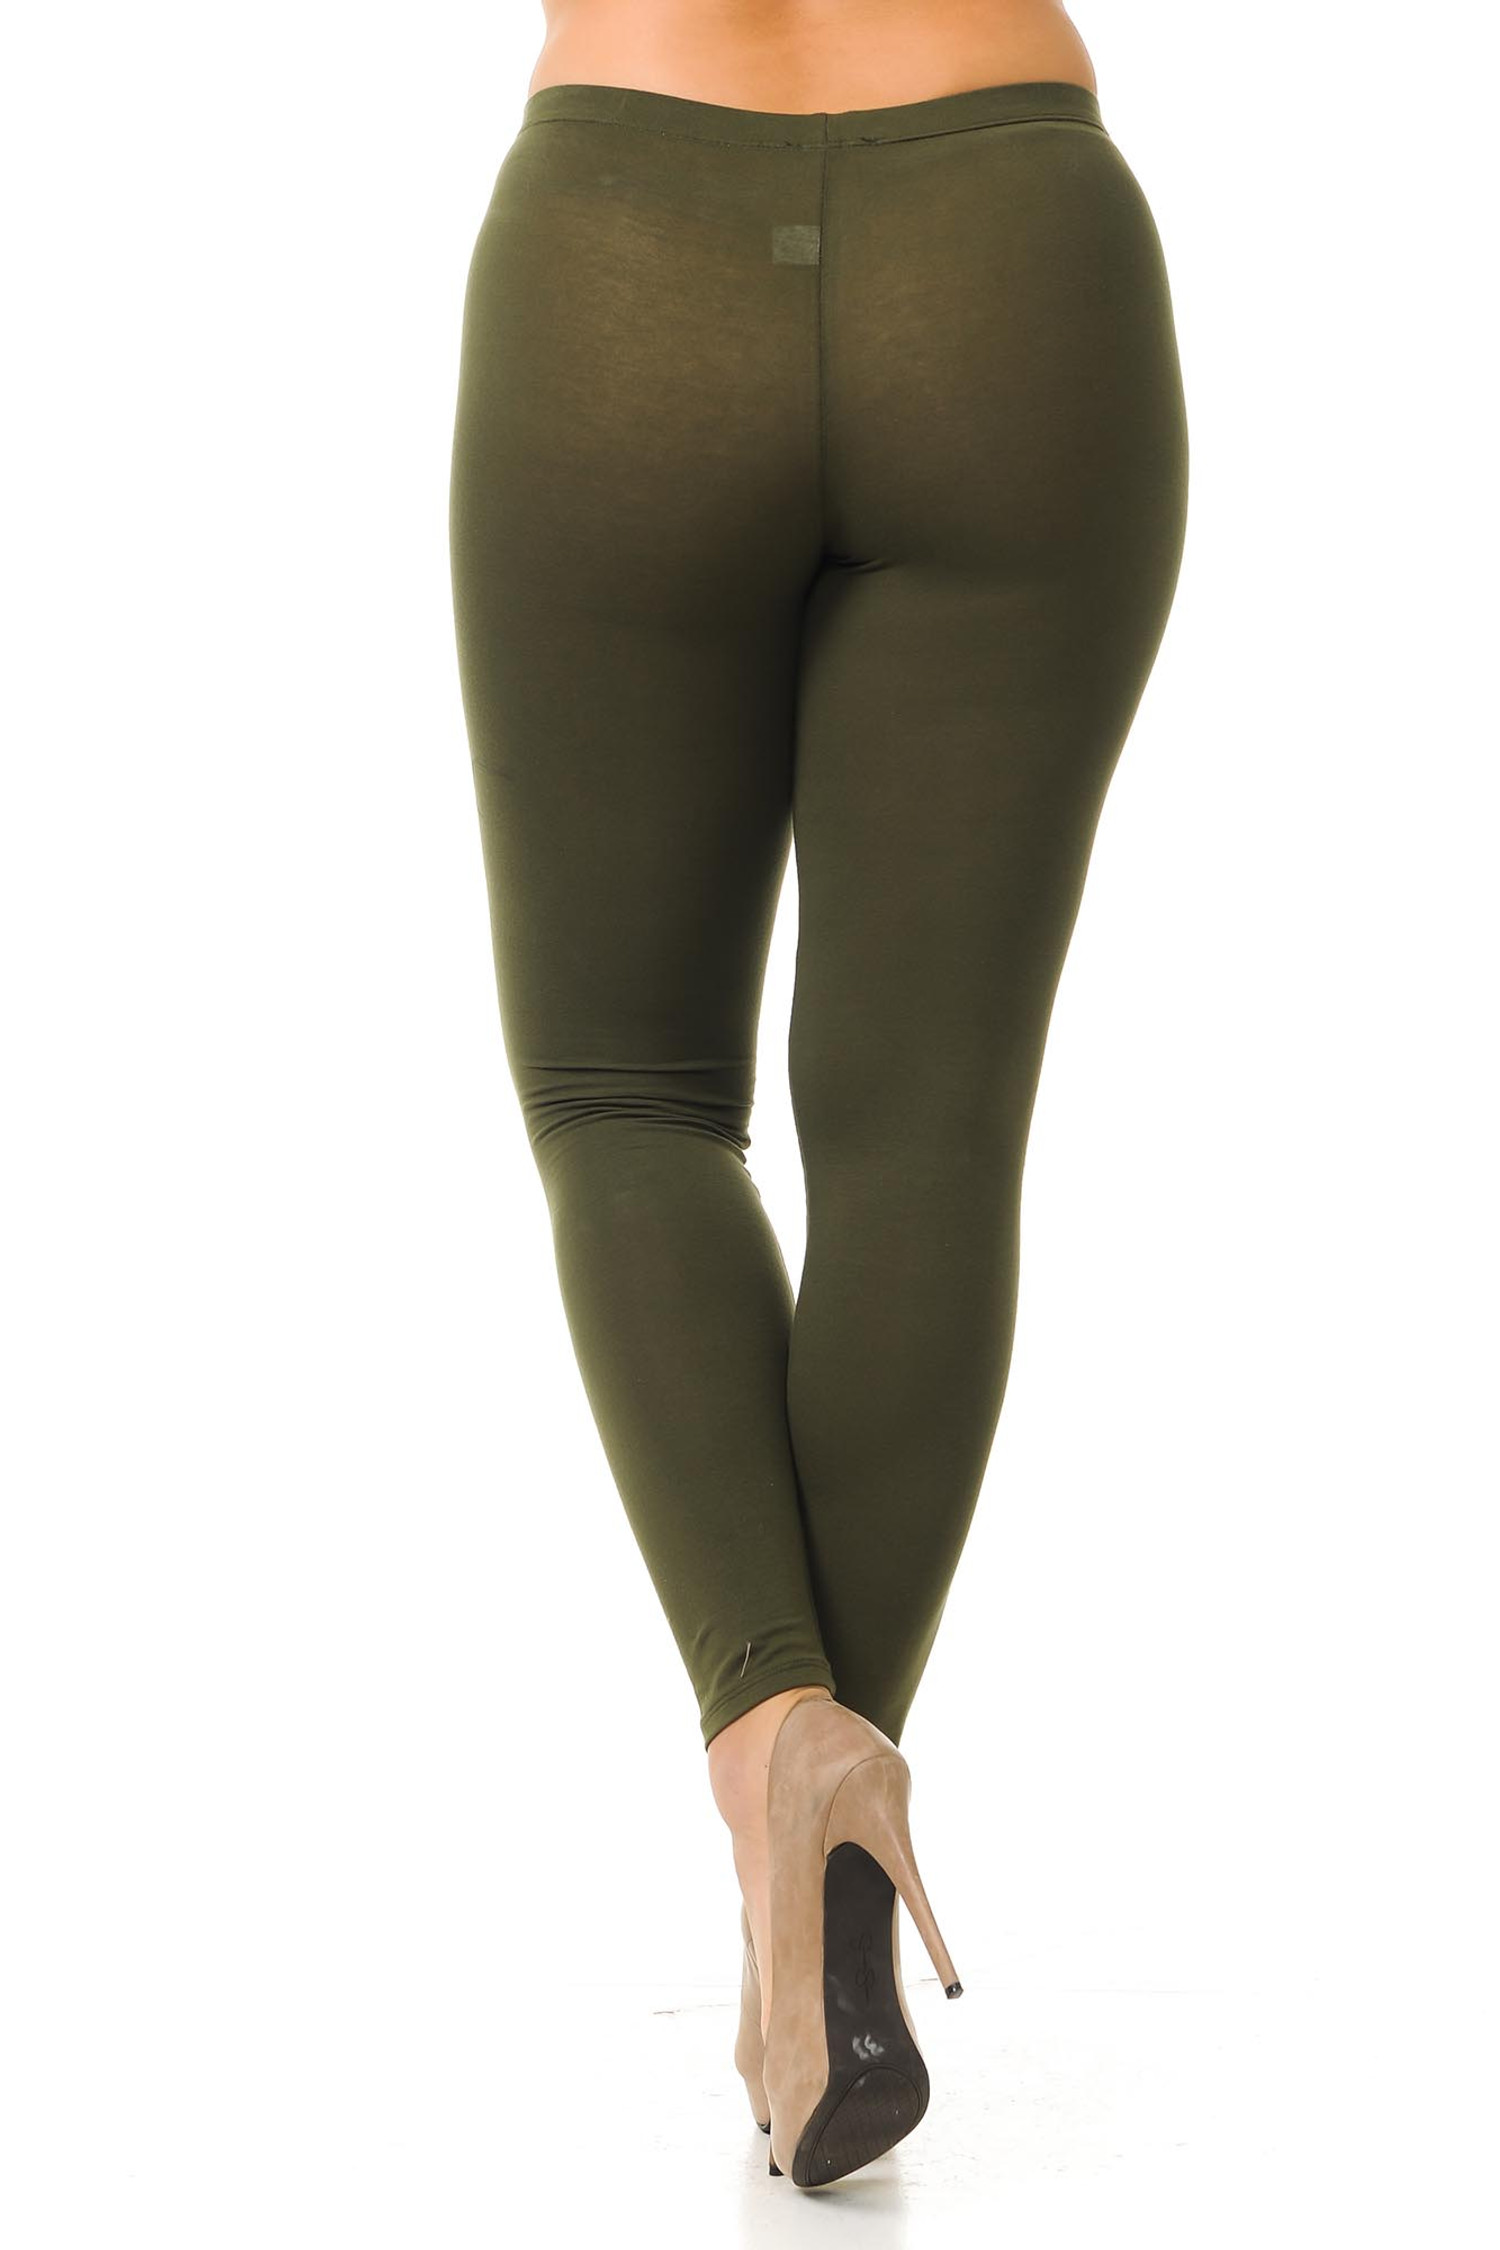 Rear view image showing the flattering body-hugging fit of our olive made in the USA full length cotton plus size leggings.